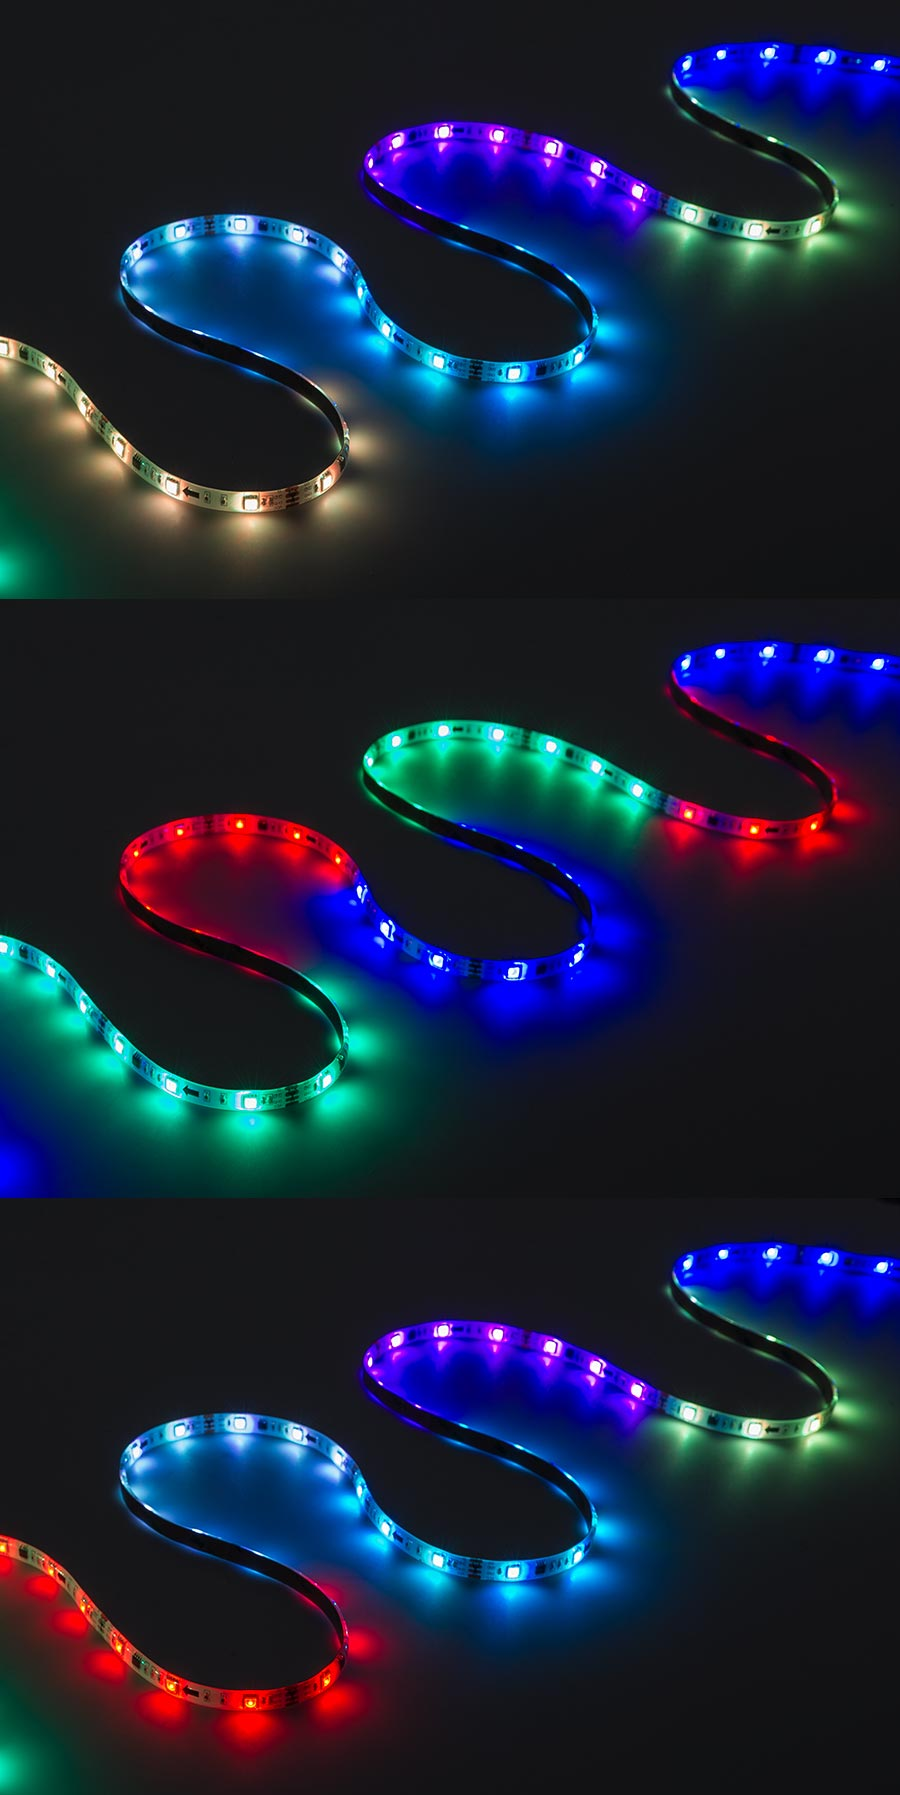 outdoor rgb led strip light kit color chasing 12v led. Black Bedroom Furniture Sets. Home Design Ideas